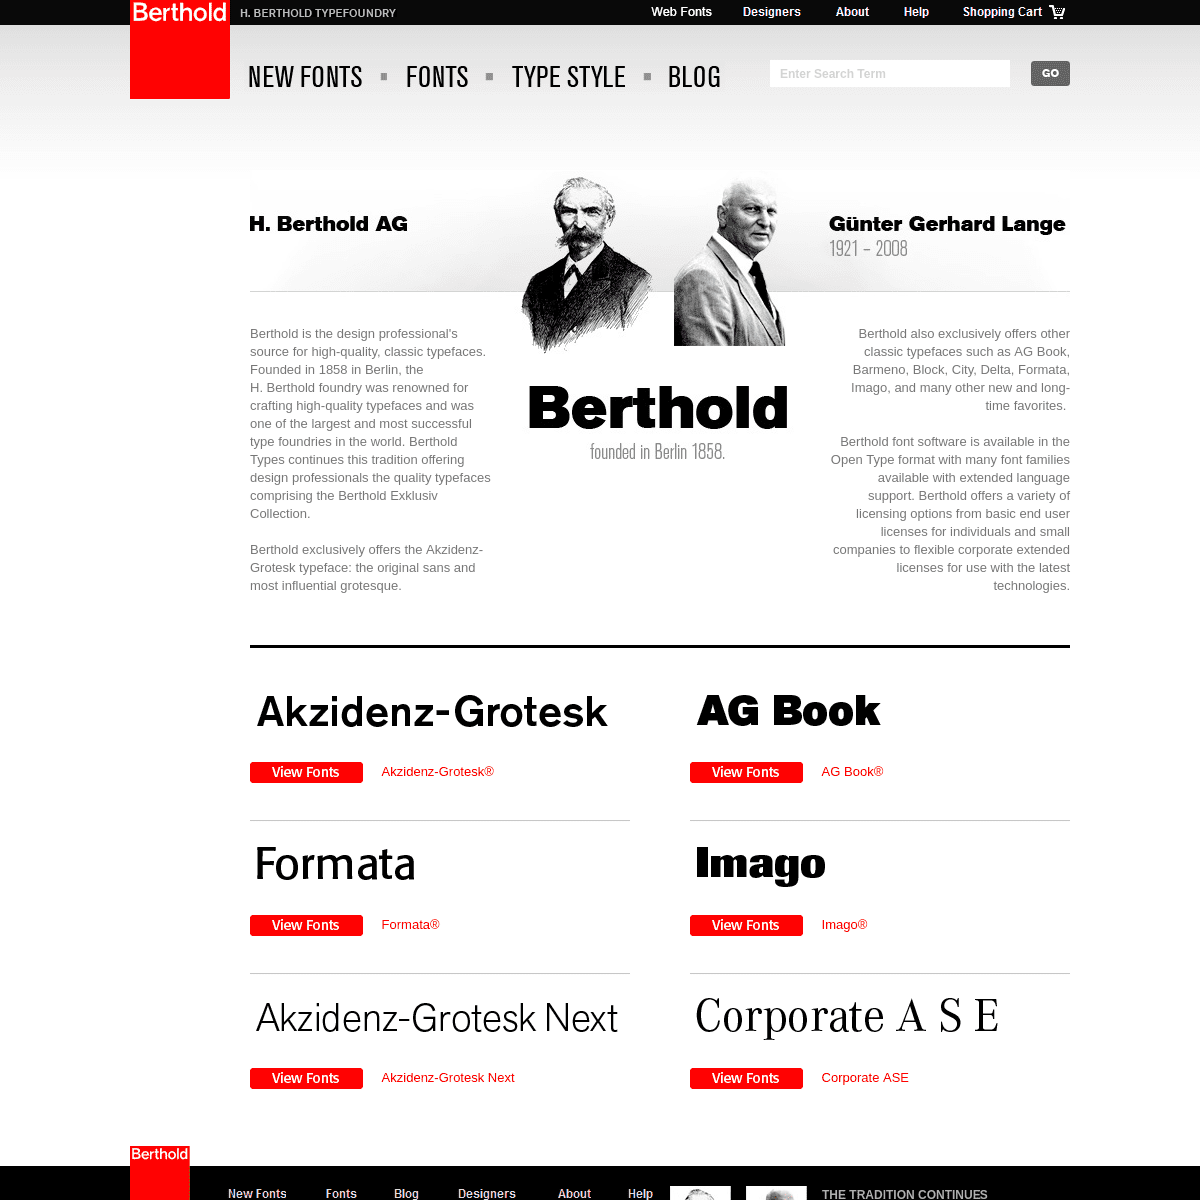 ArchiveBay.com - bertholdtypes.com - Browse and purchase Berthold BQ and Berthold BE Adobe Related typefaces from the H. Berthold Typefoundry Berlin.